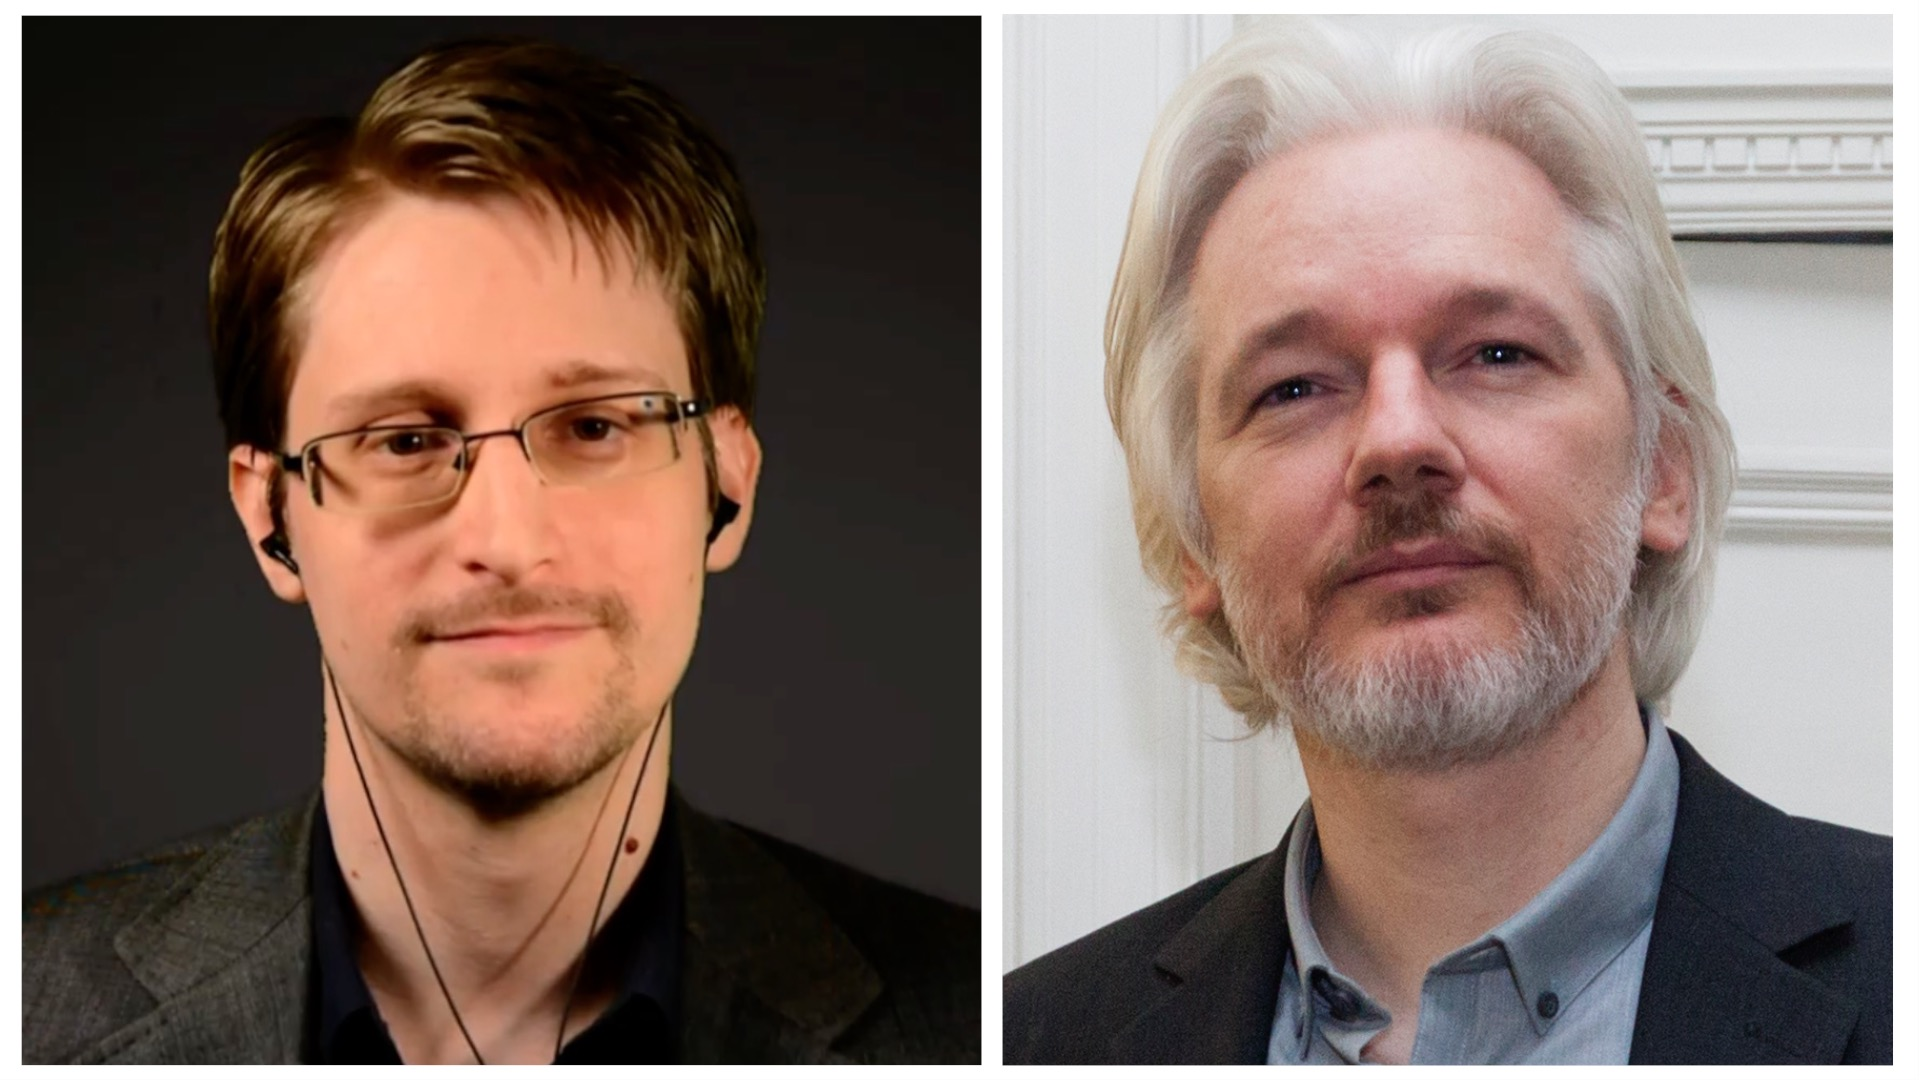 Edward Snowden Snowdens & Julian Assange's warning about the Security and Surveillance Industrial Complex